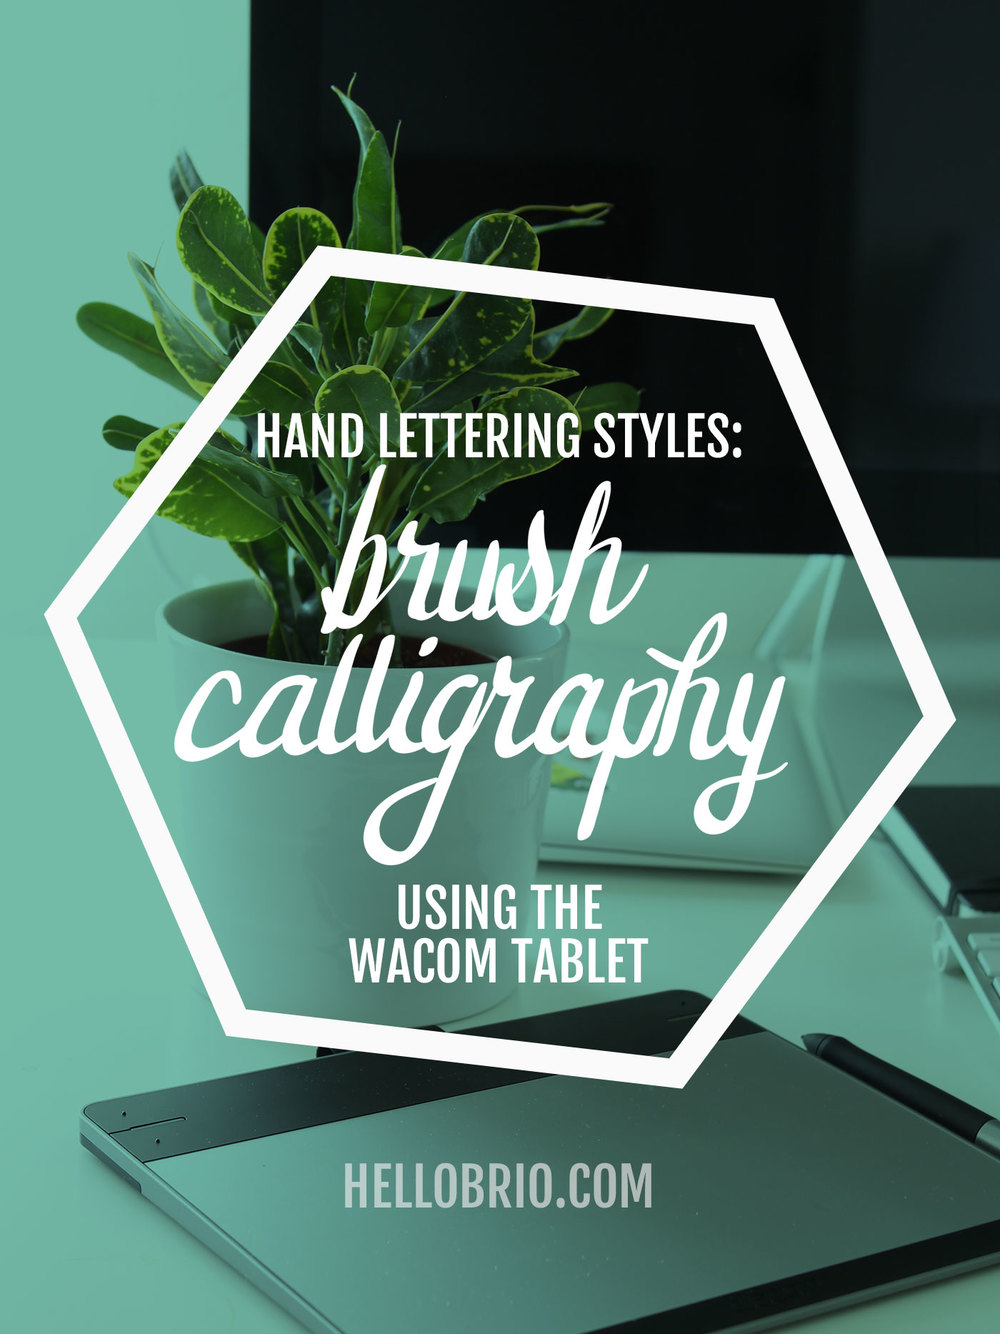 Illustrator And Hand Lettering Tutorial Brush Calligraphy